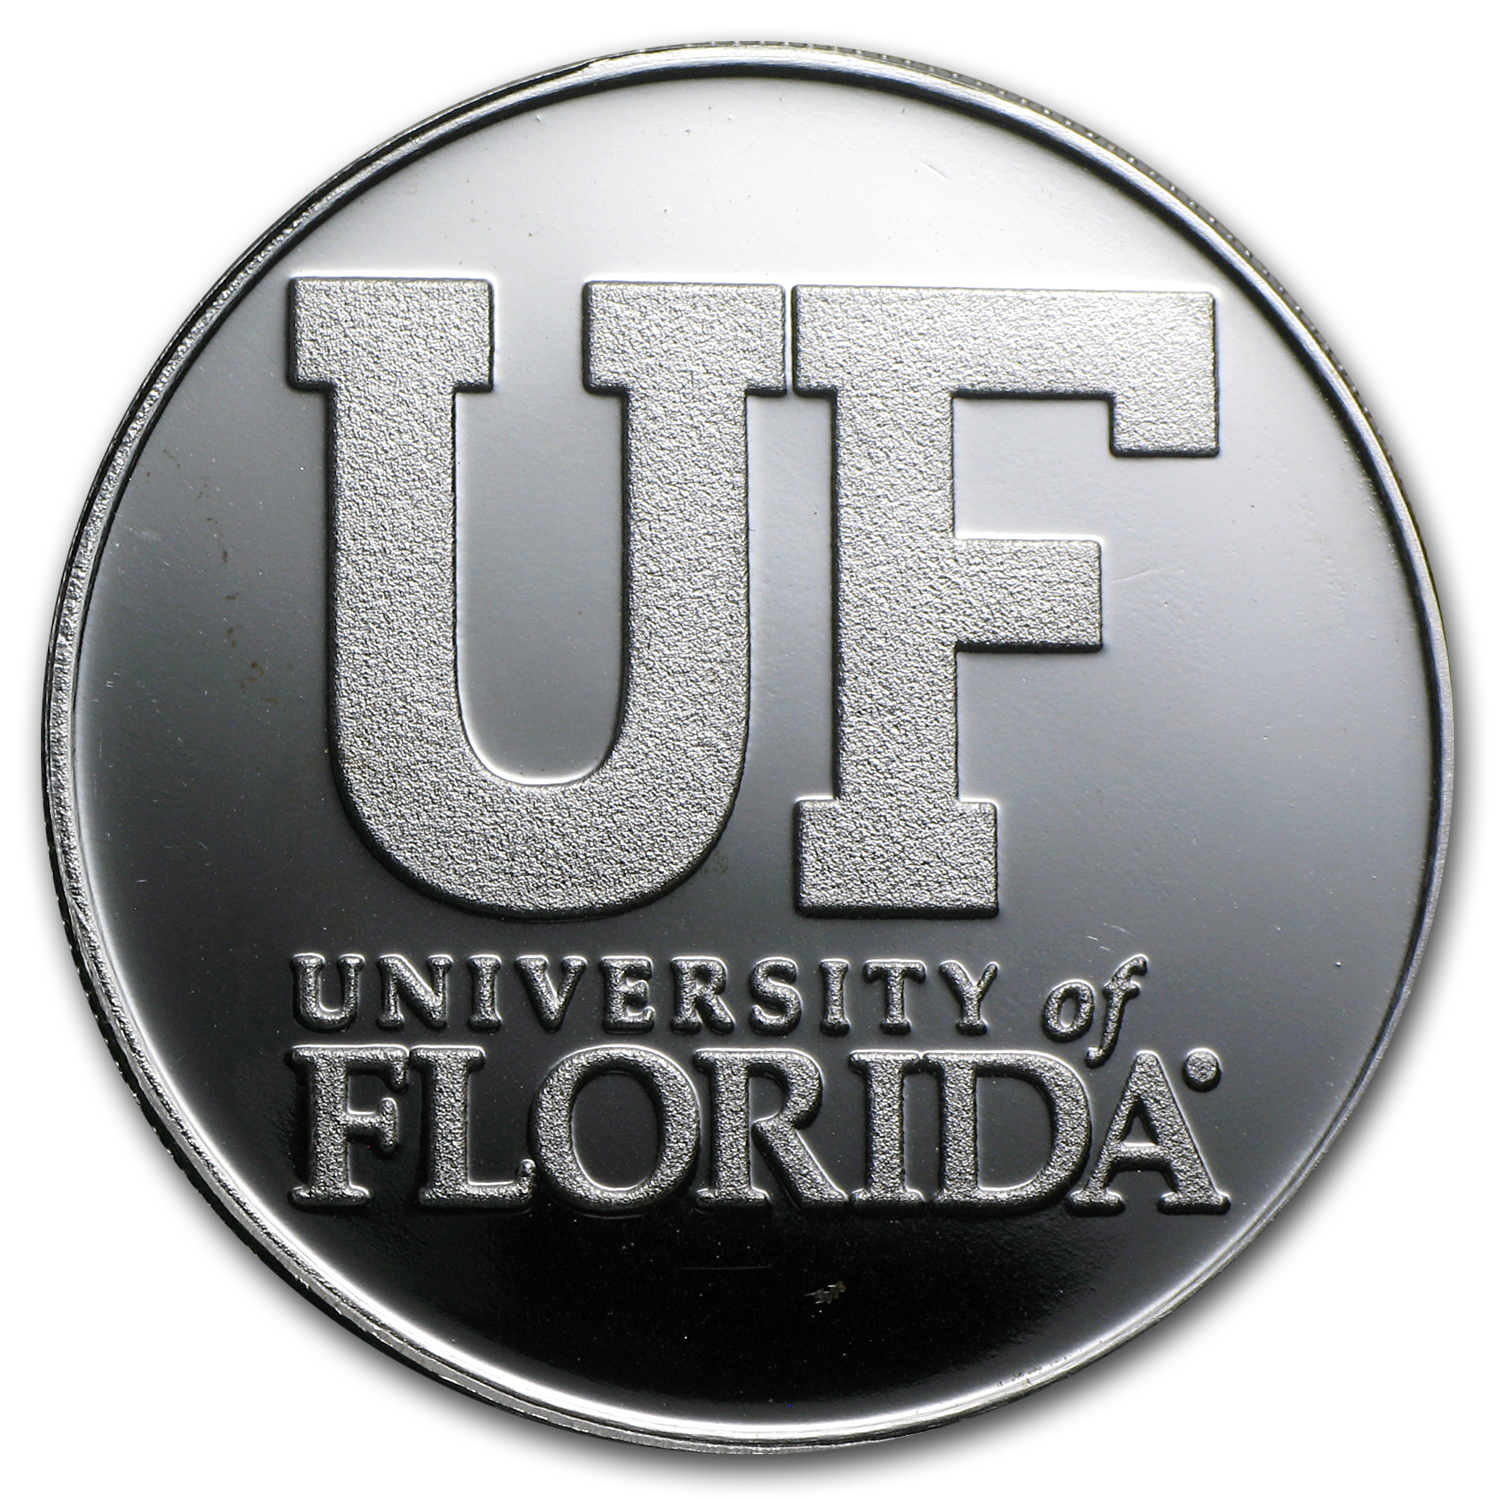 1 oz Silver Round - University of Florida